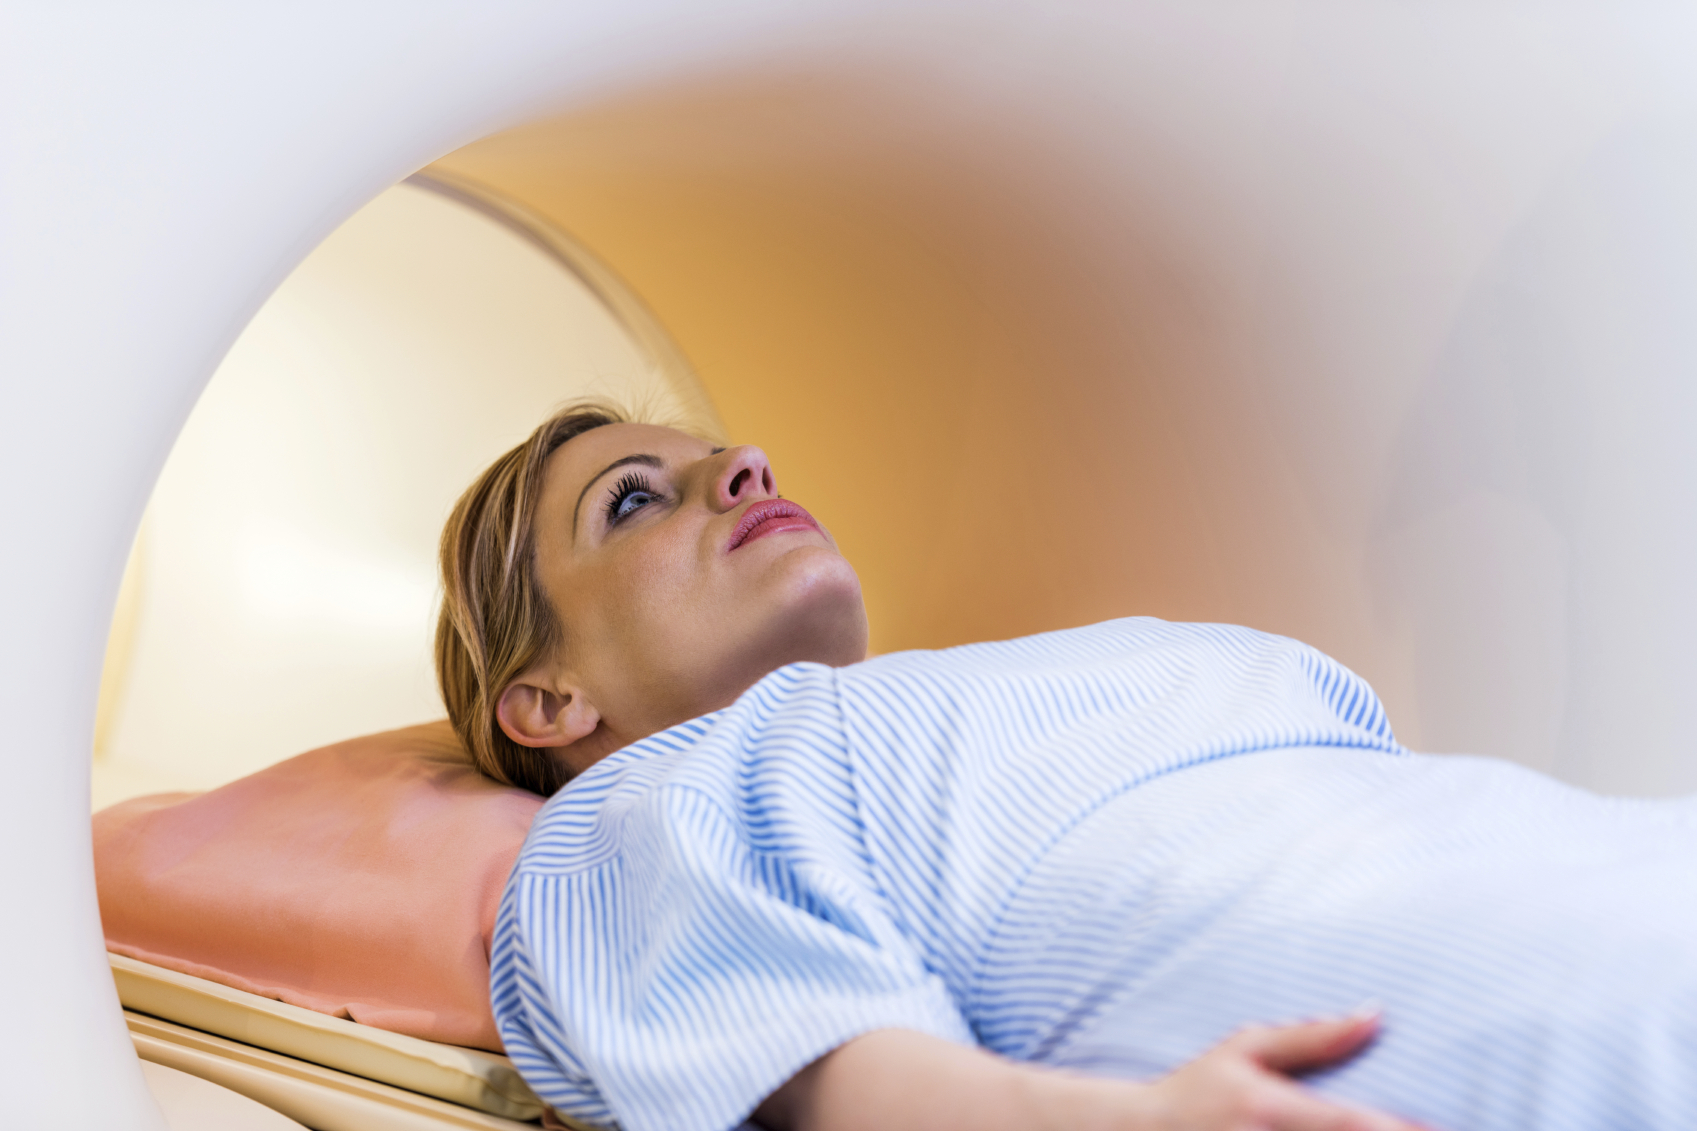 A young woman in an MRI machine. (stock image)